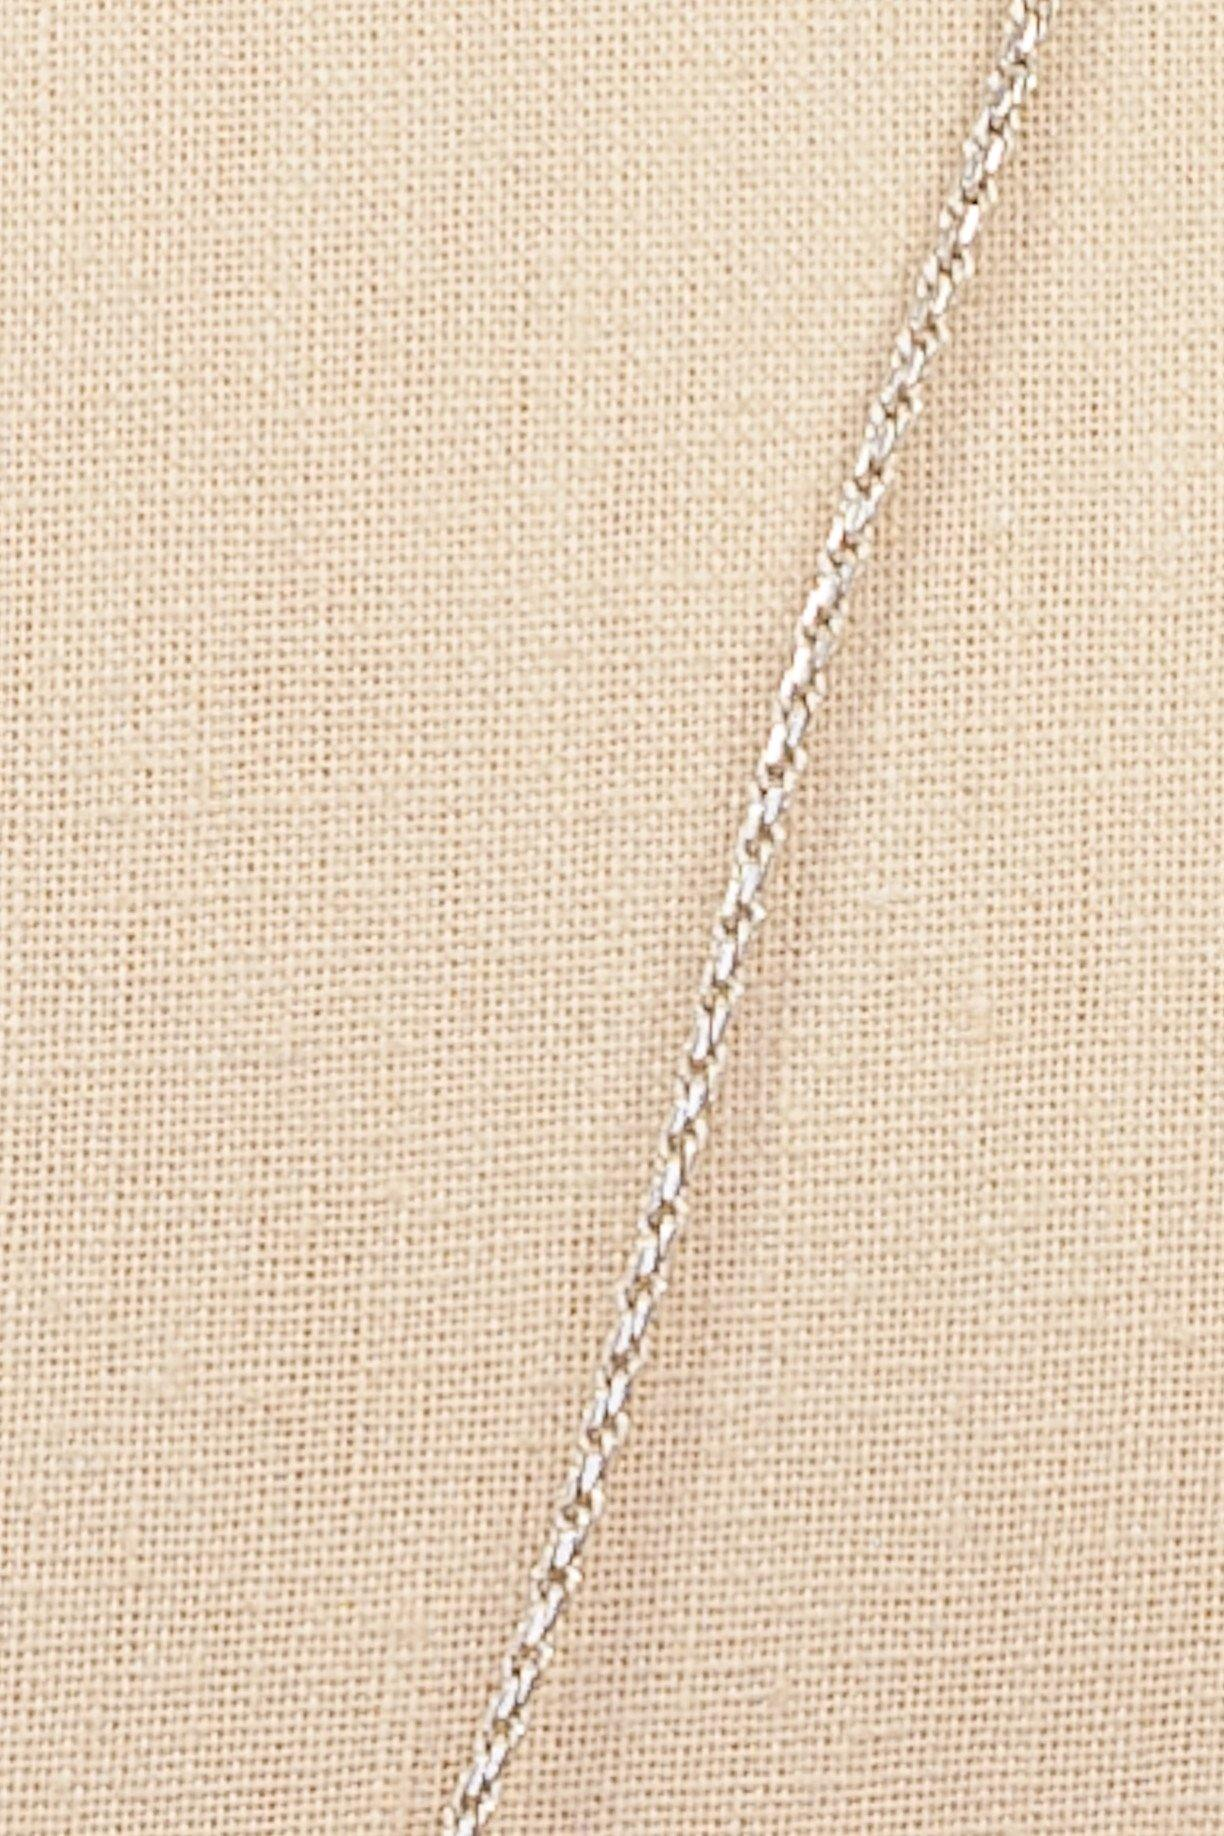 80's__1928__Silver Chain Necklace